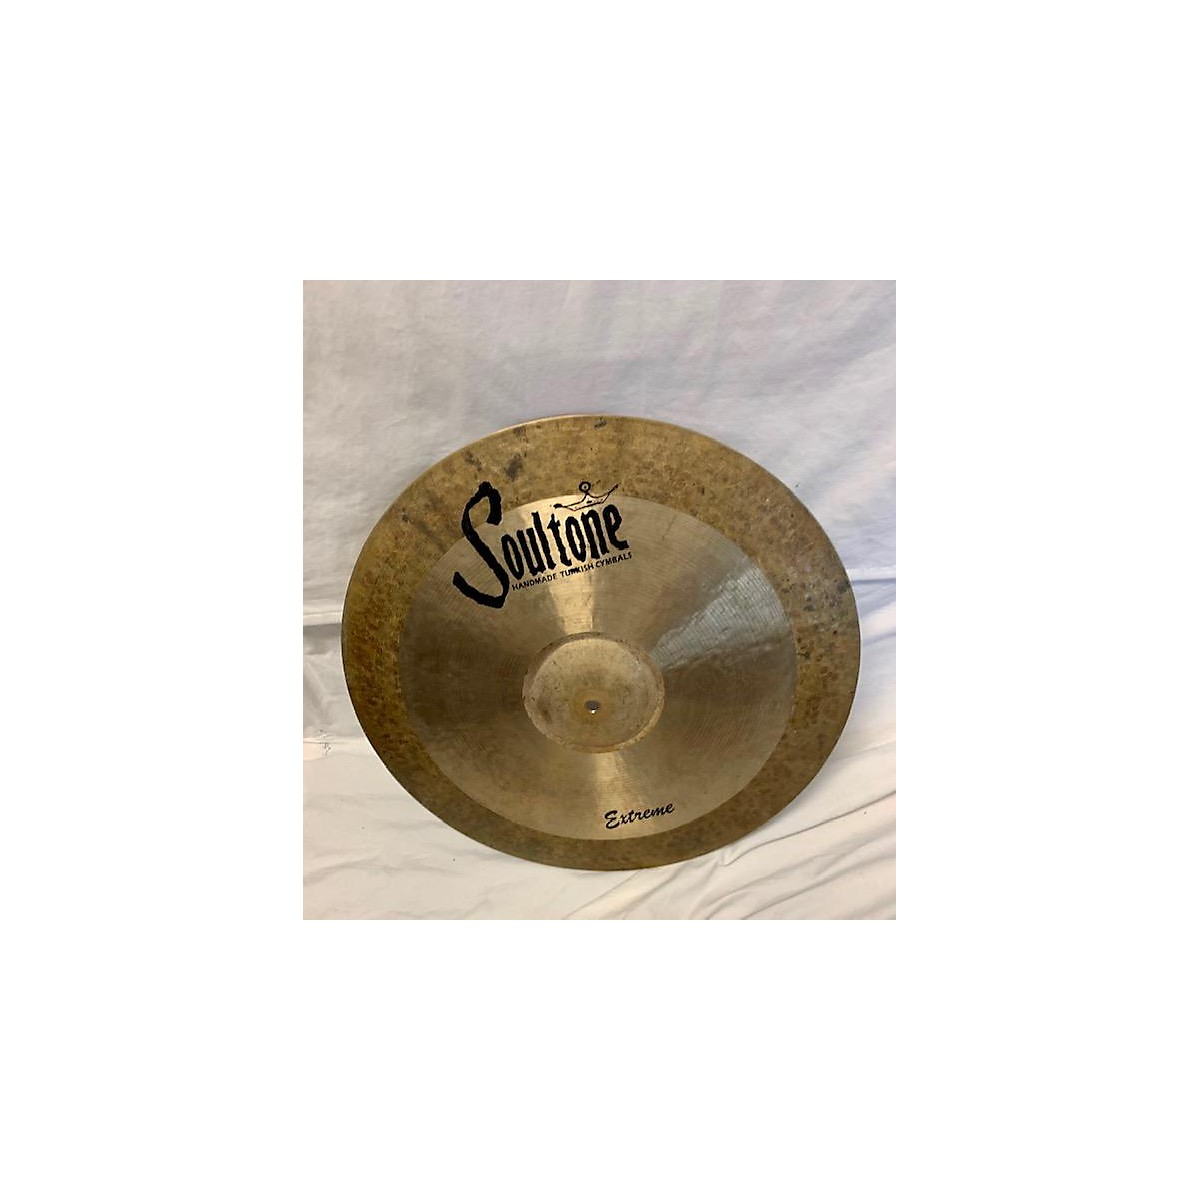 Soultone 20in Extreme Crash Cymbal